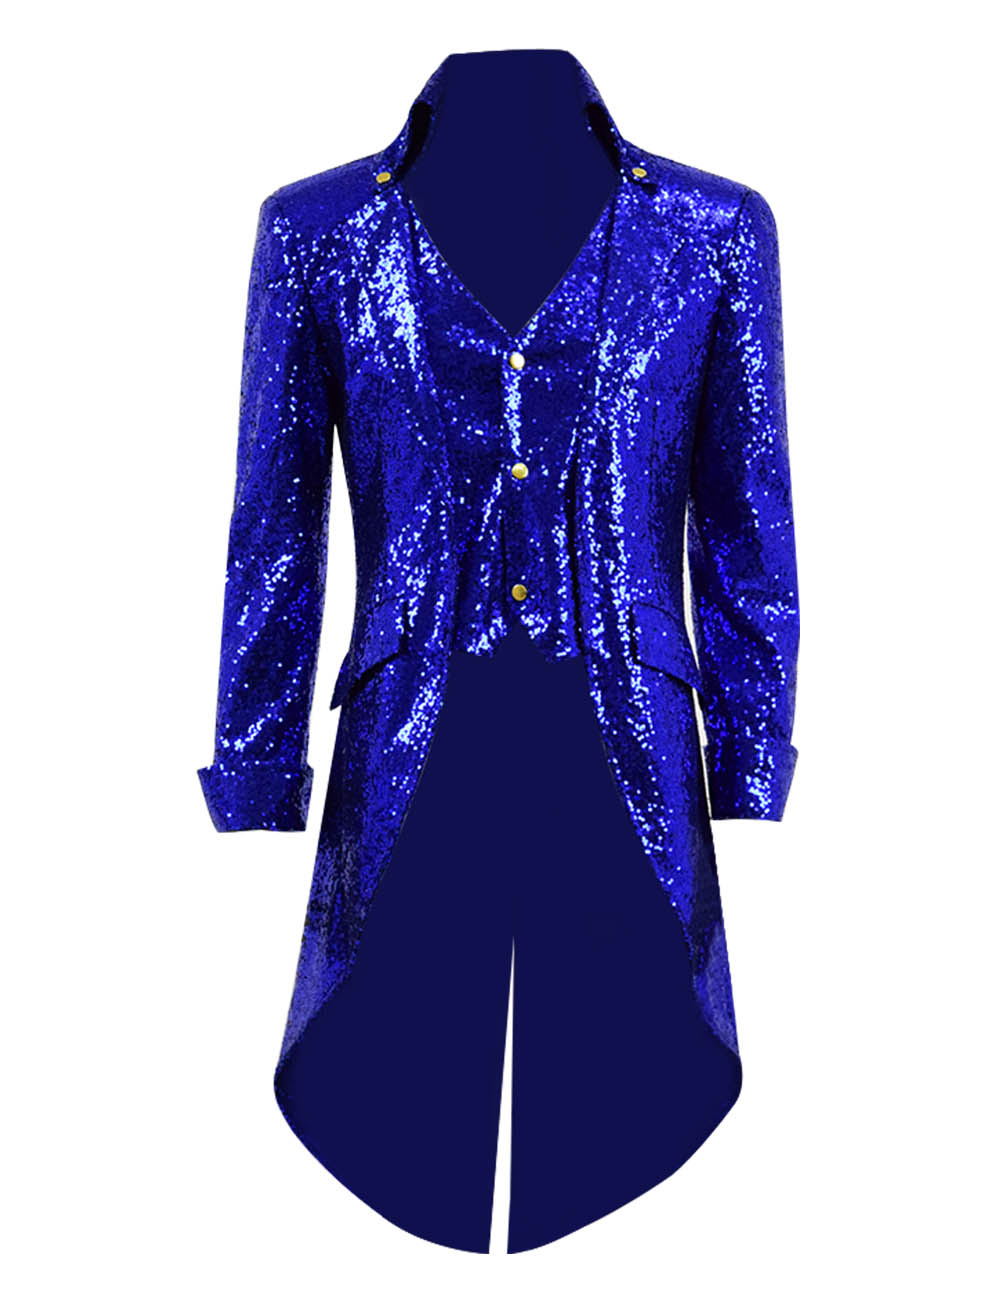 SteamPunk Sequin Tailcoat Bling Stage Coat Fake two pieces Men's Jacket Cosplay Tailcoat for Show Halloween Party